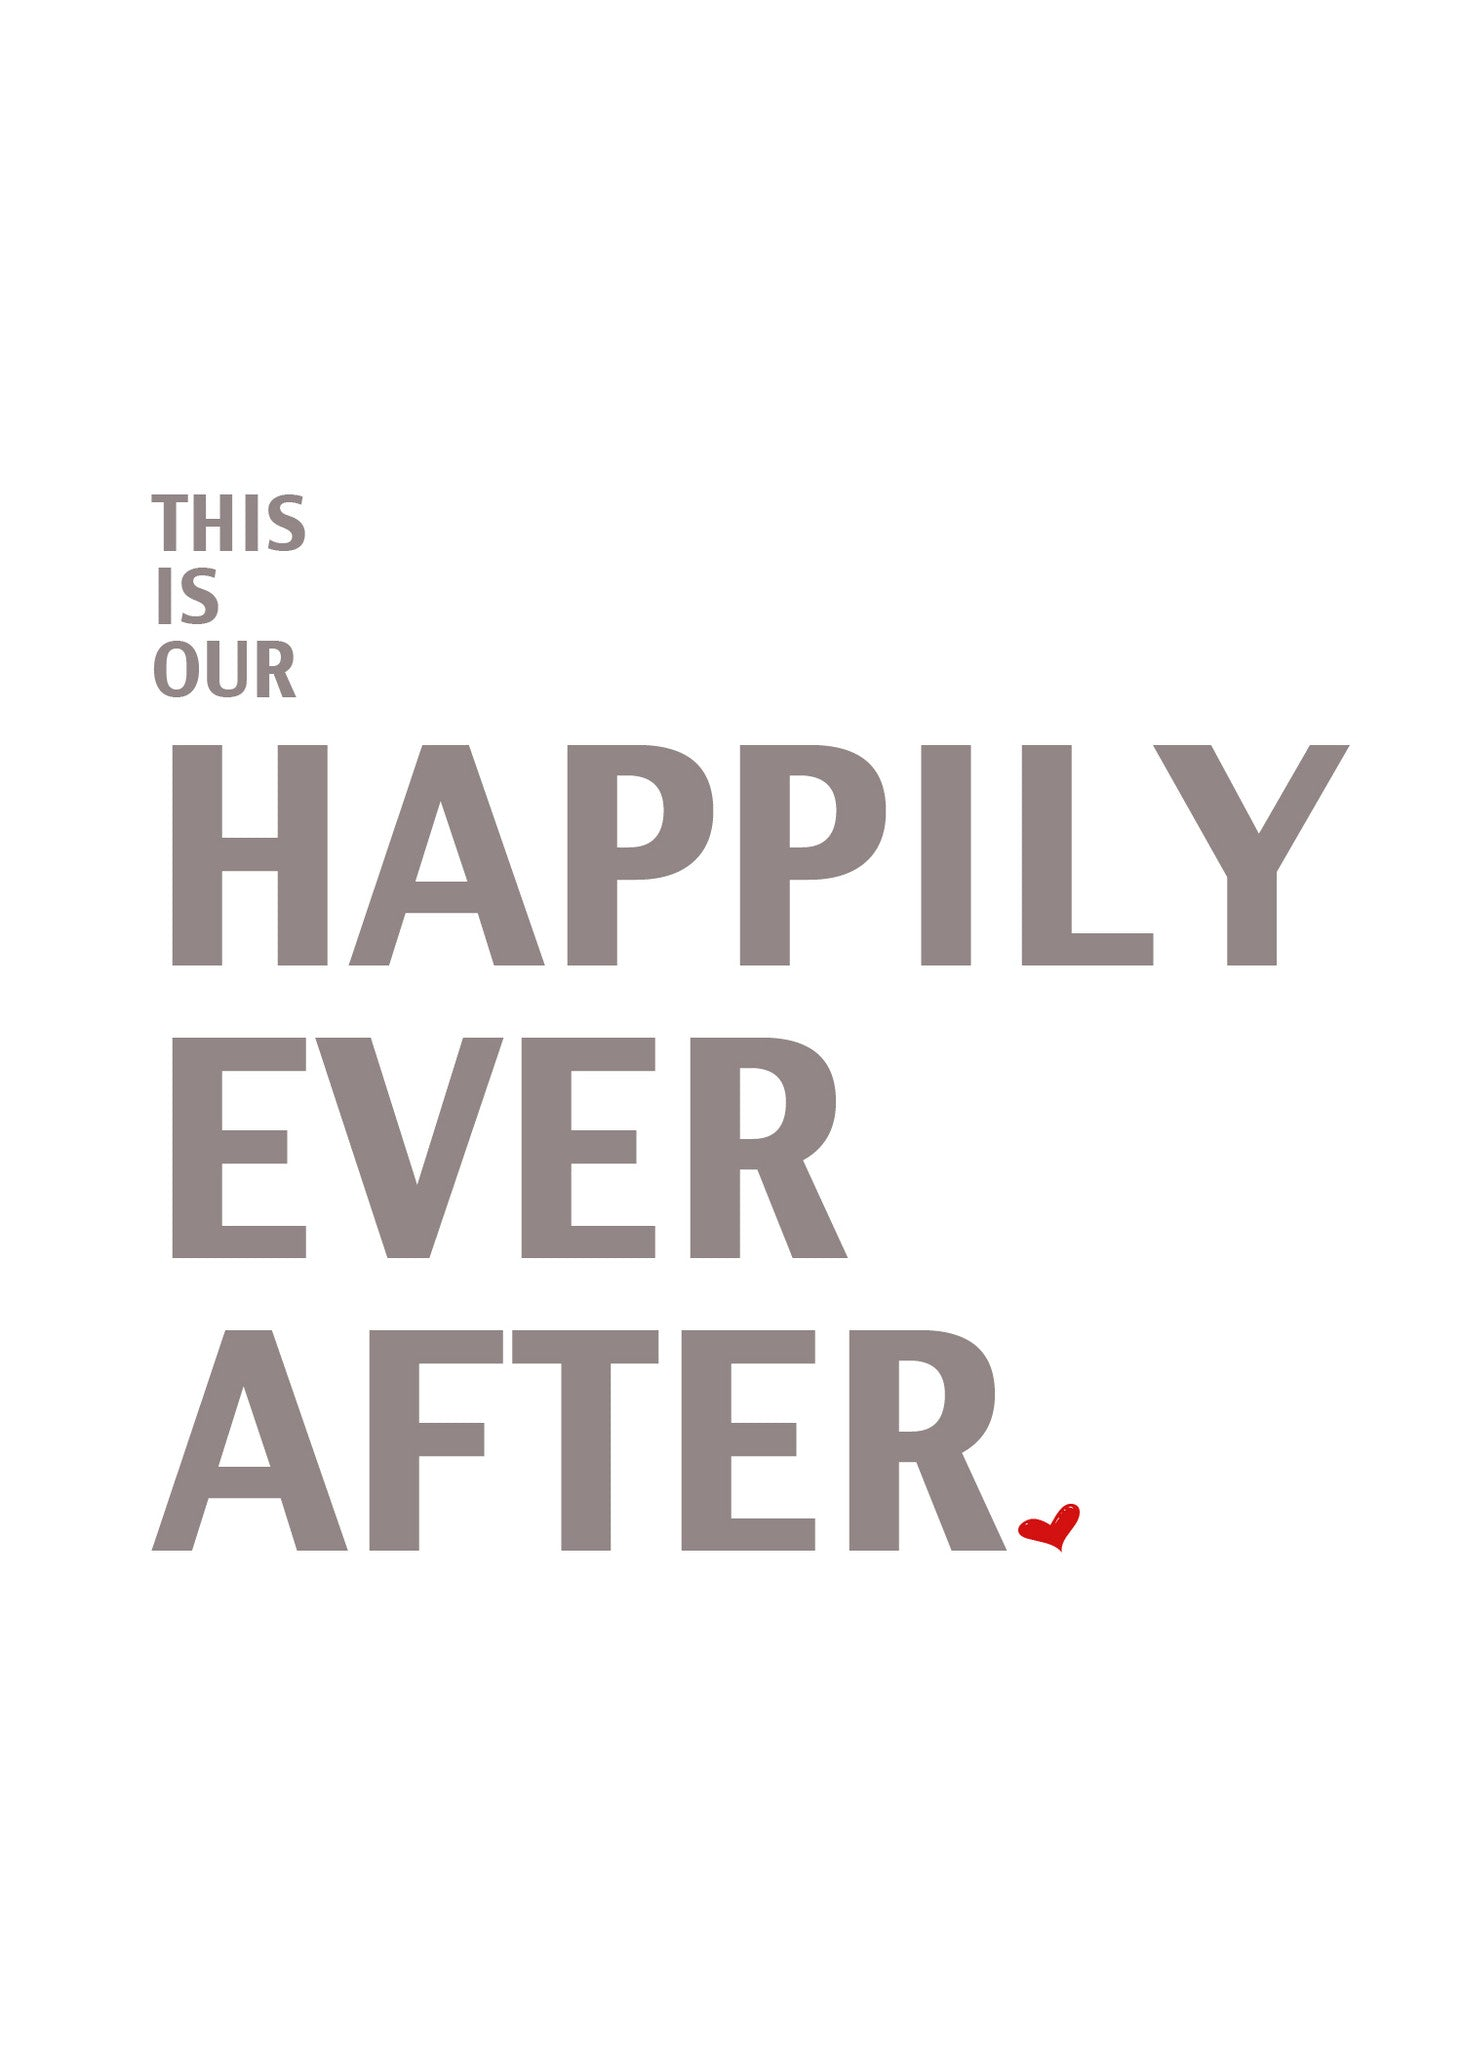 This is Our Happily Ever After Printable Art - These Bare Walls